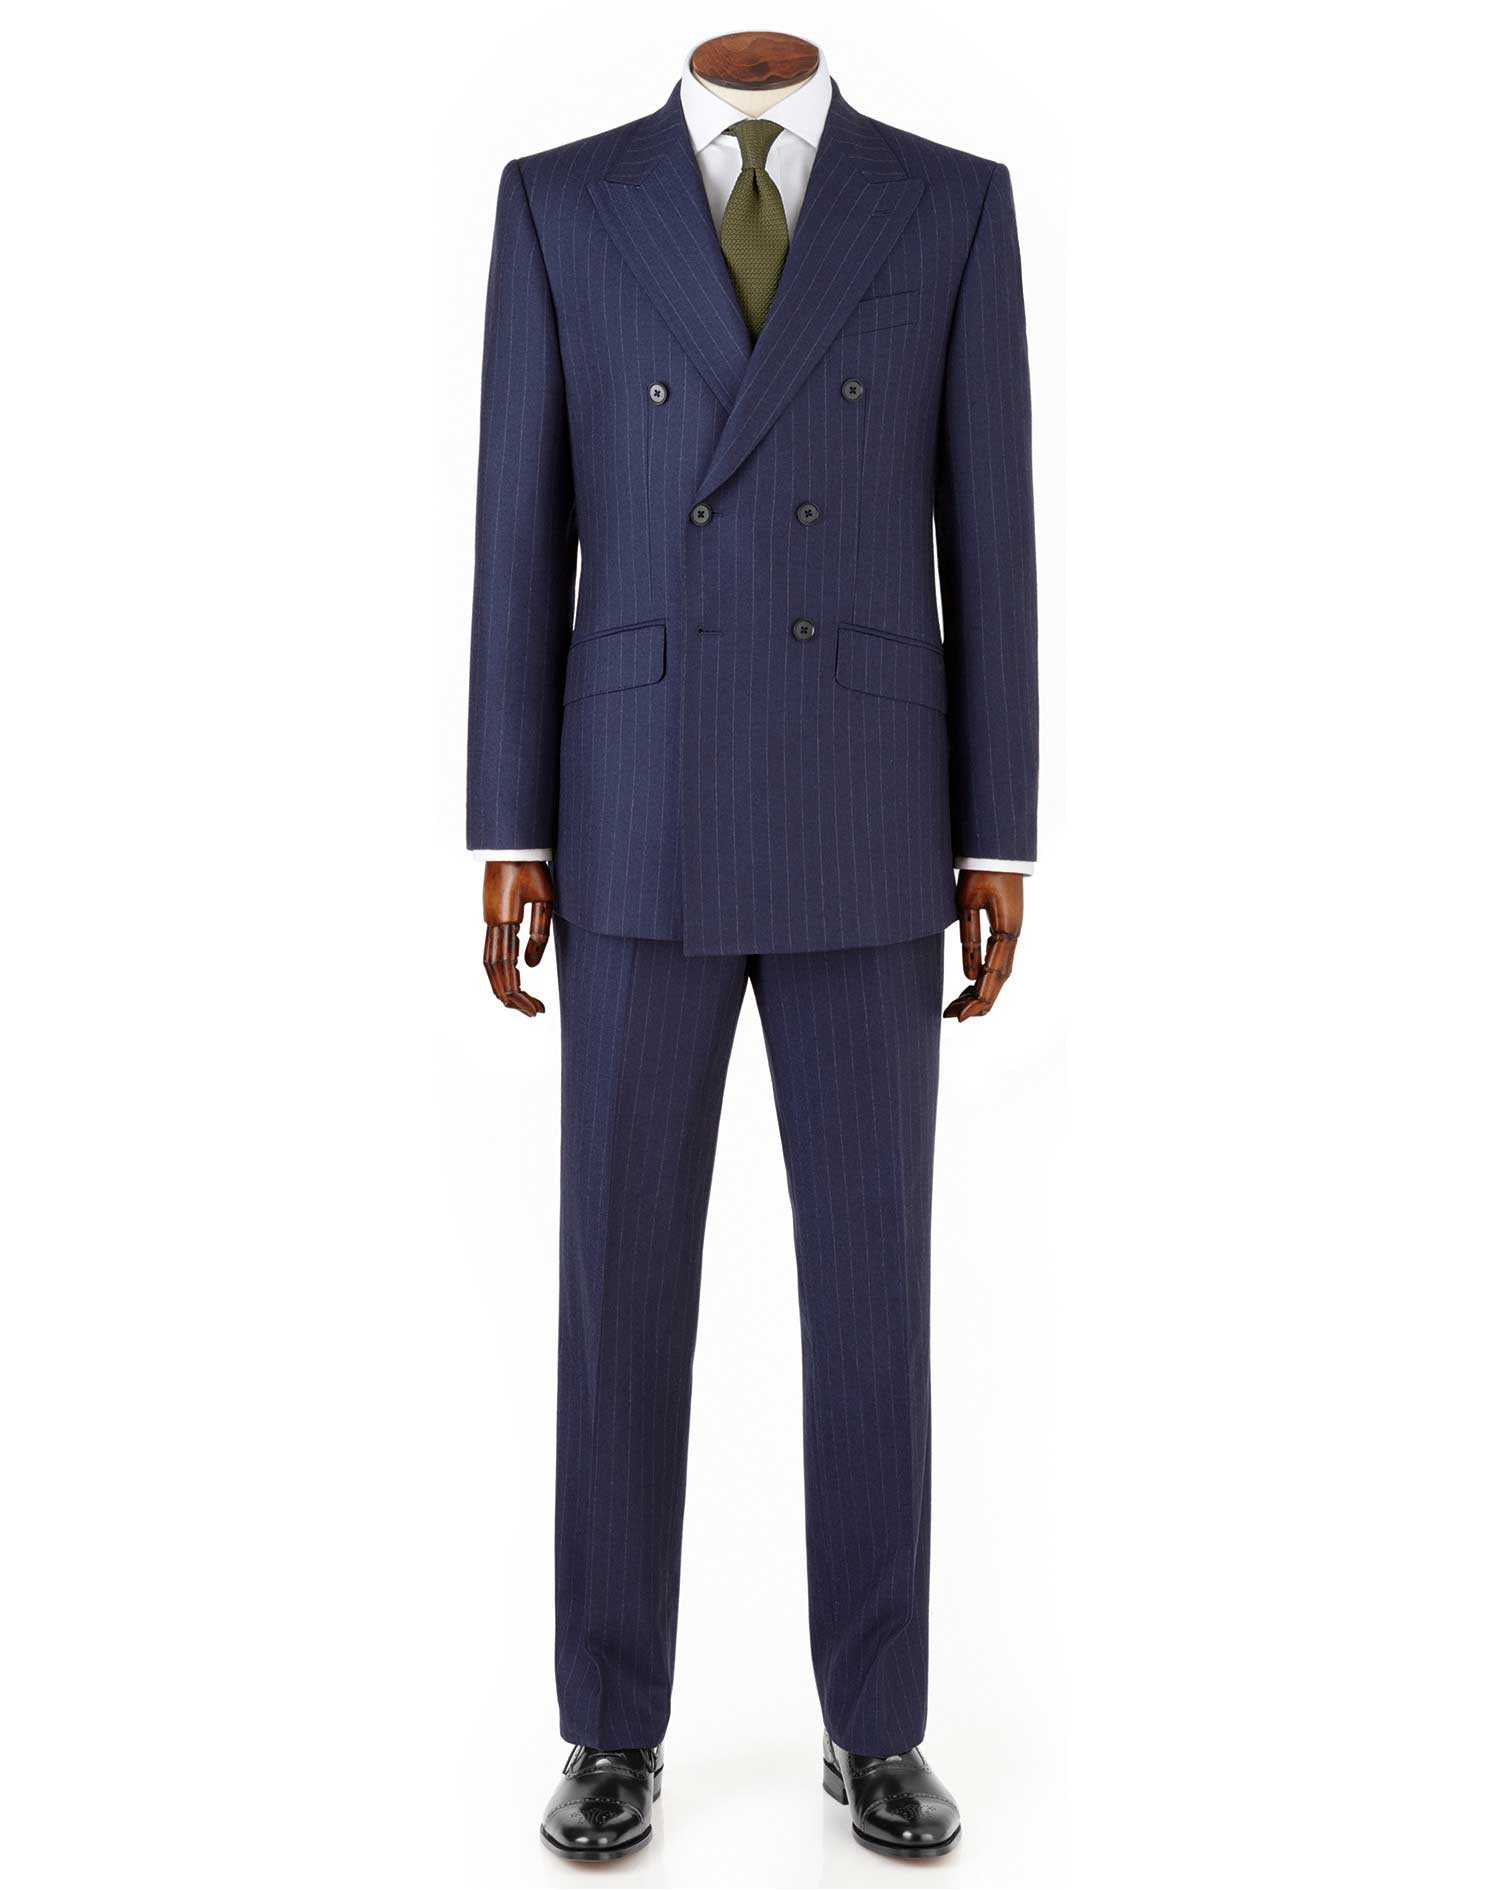 Navy Stripe Slim Fit Saxony Double Breasted Business Suit Wool Jacket Size 40 Regular by Charles Tyr